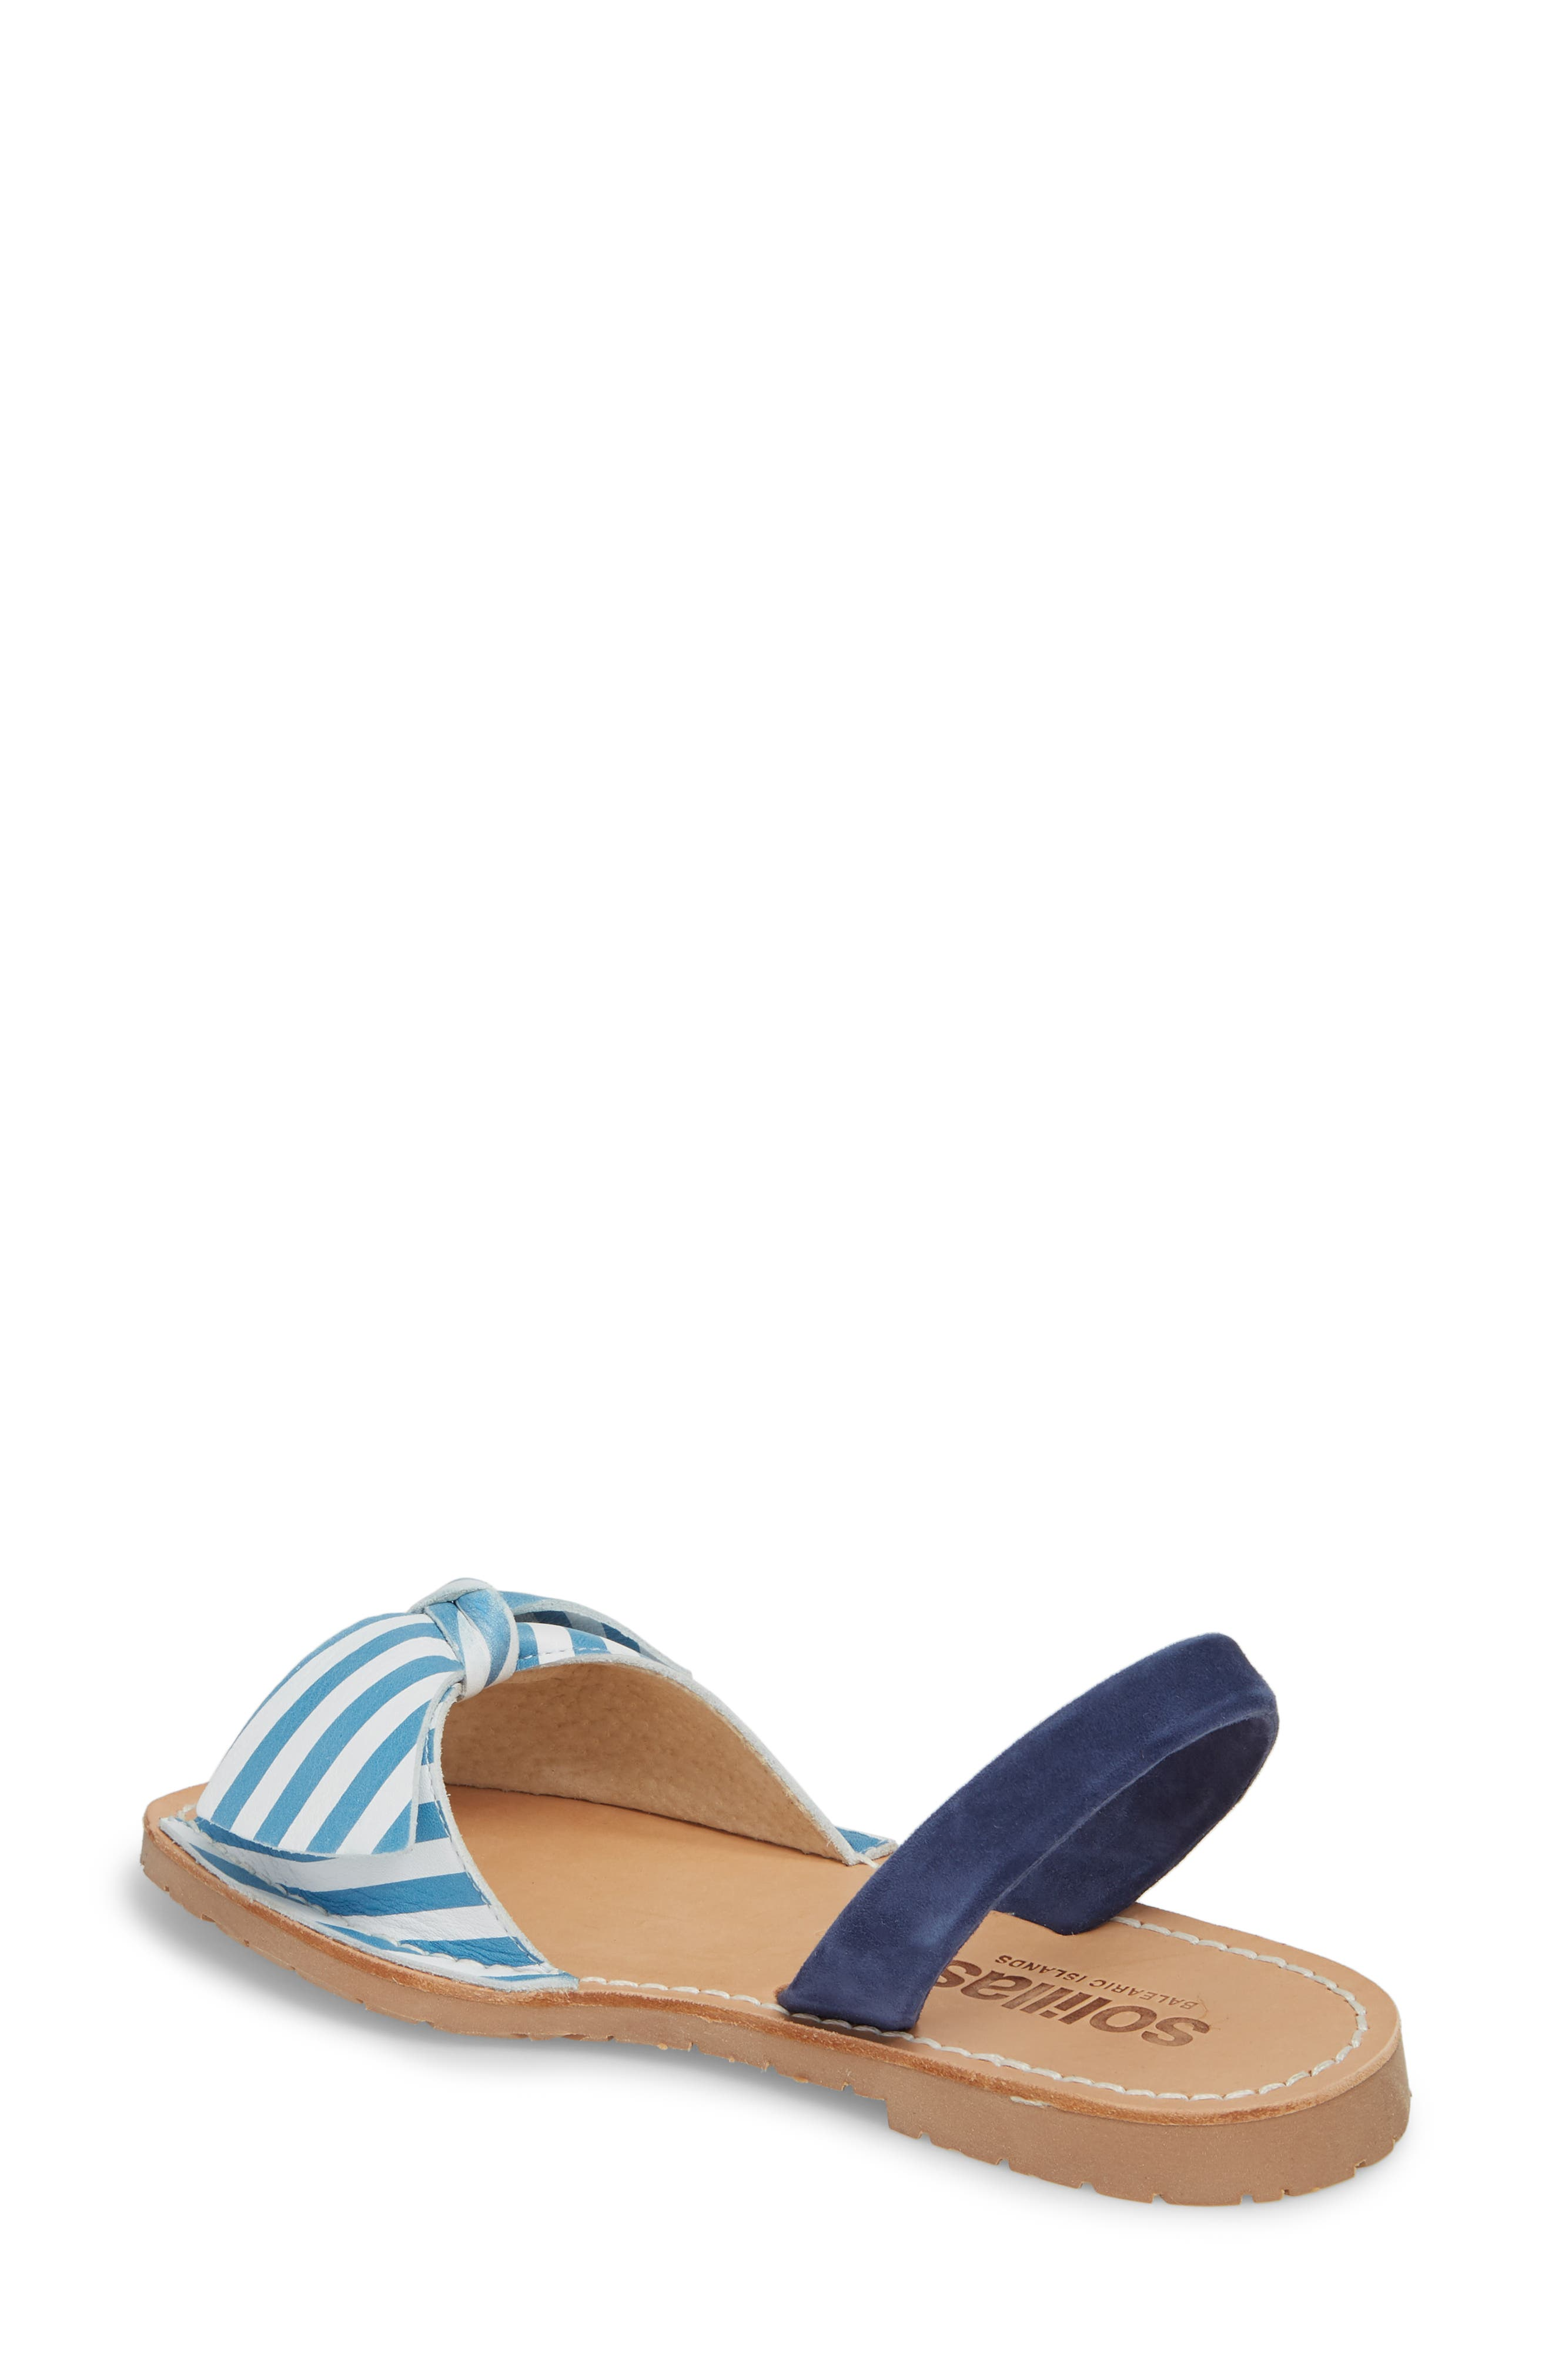 Bow Sandal,                             Alternate thumbnail 2, color,                             BLUE AND WHITE